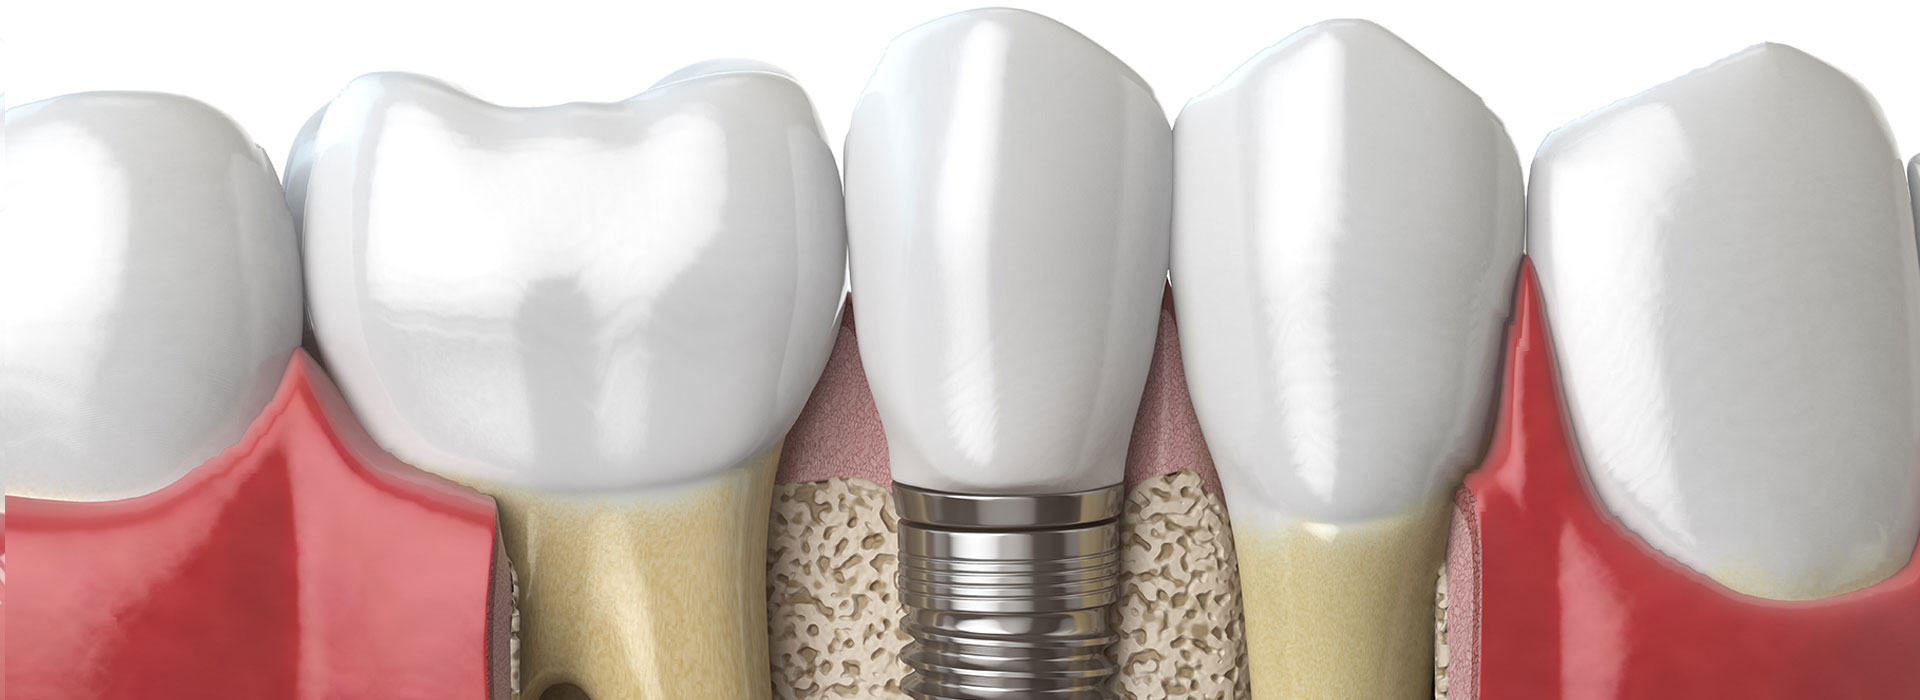 Brisbane dental implants River CIty Dental